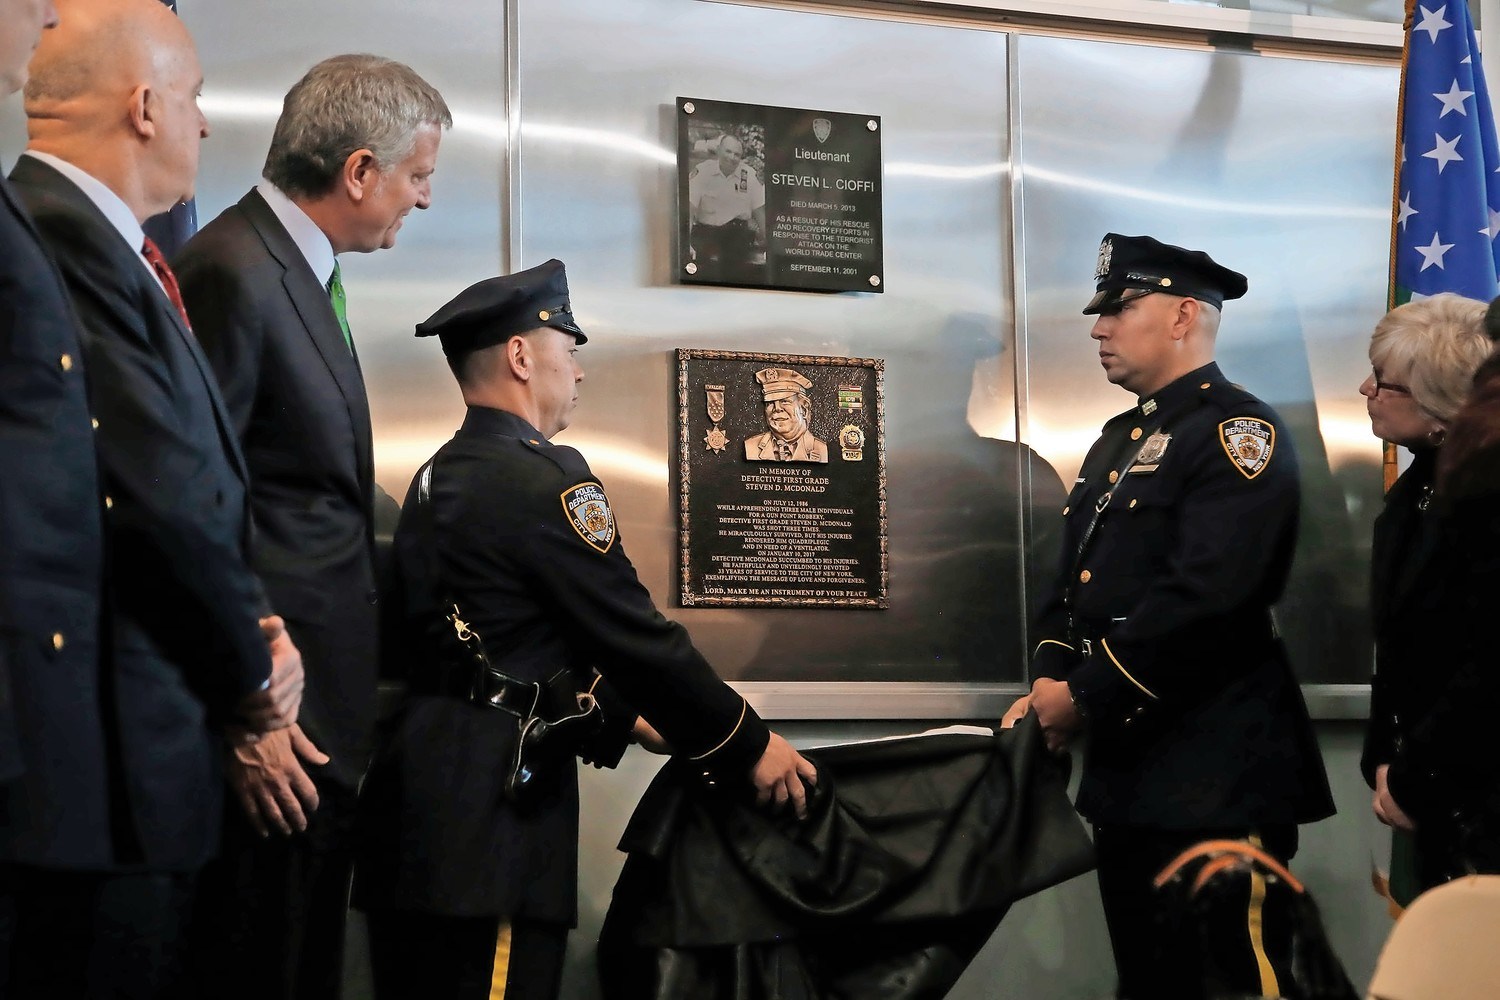 Officers unveiled McDonald's plaque at the precinct.